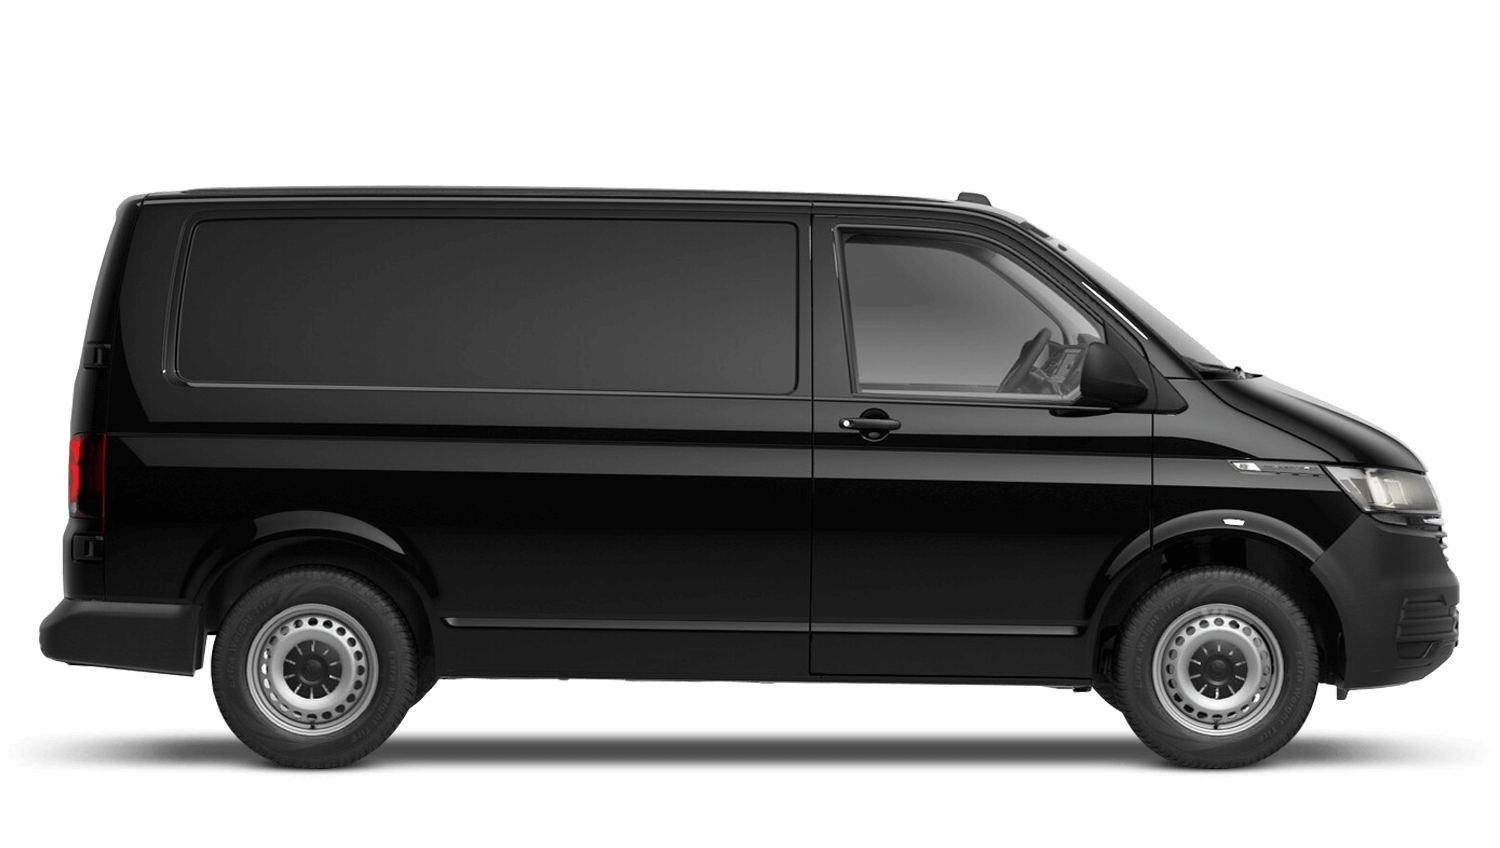 Exclusive Transporter 6.1 Contract Hire Offer